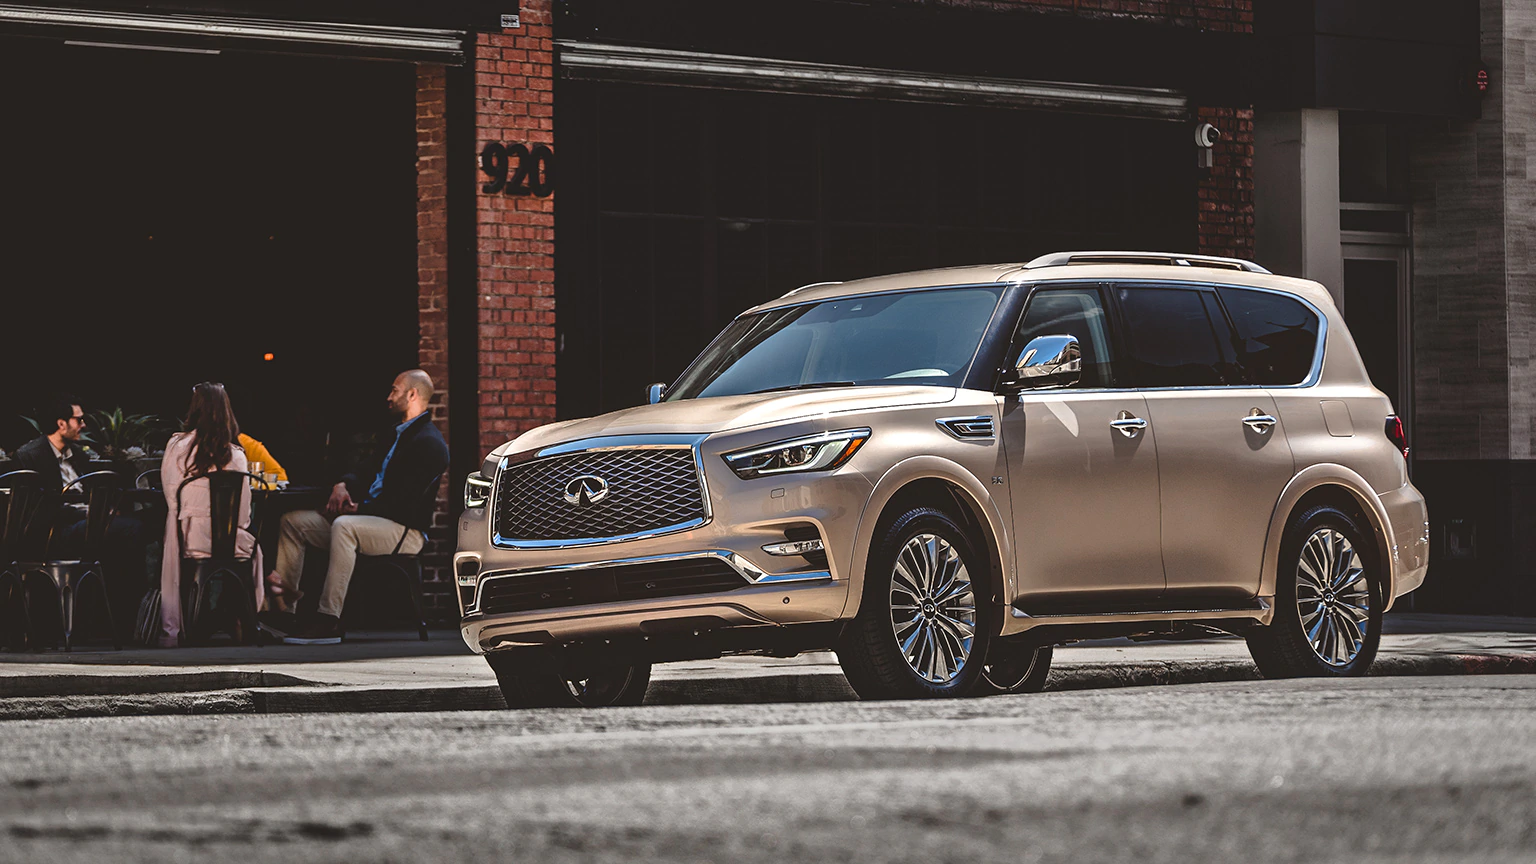 2020 INFINITI QX80 Near Mobile